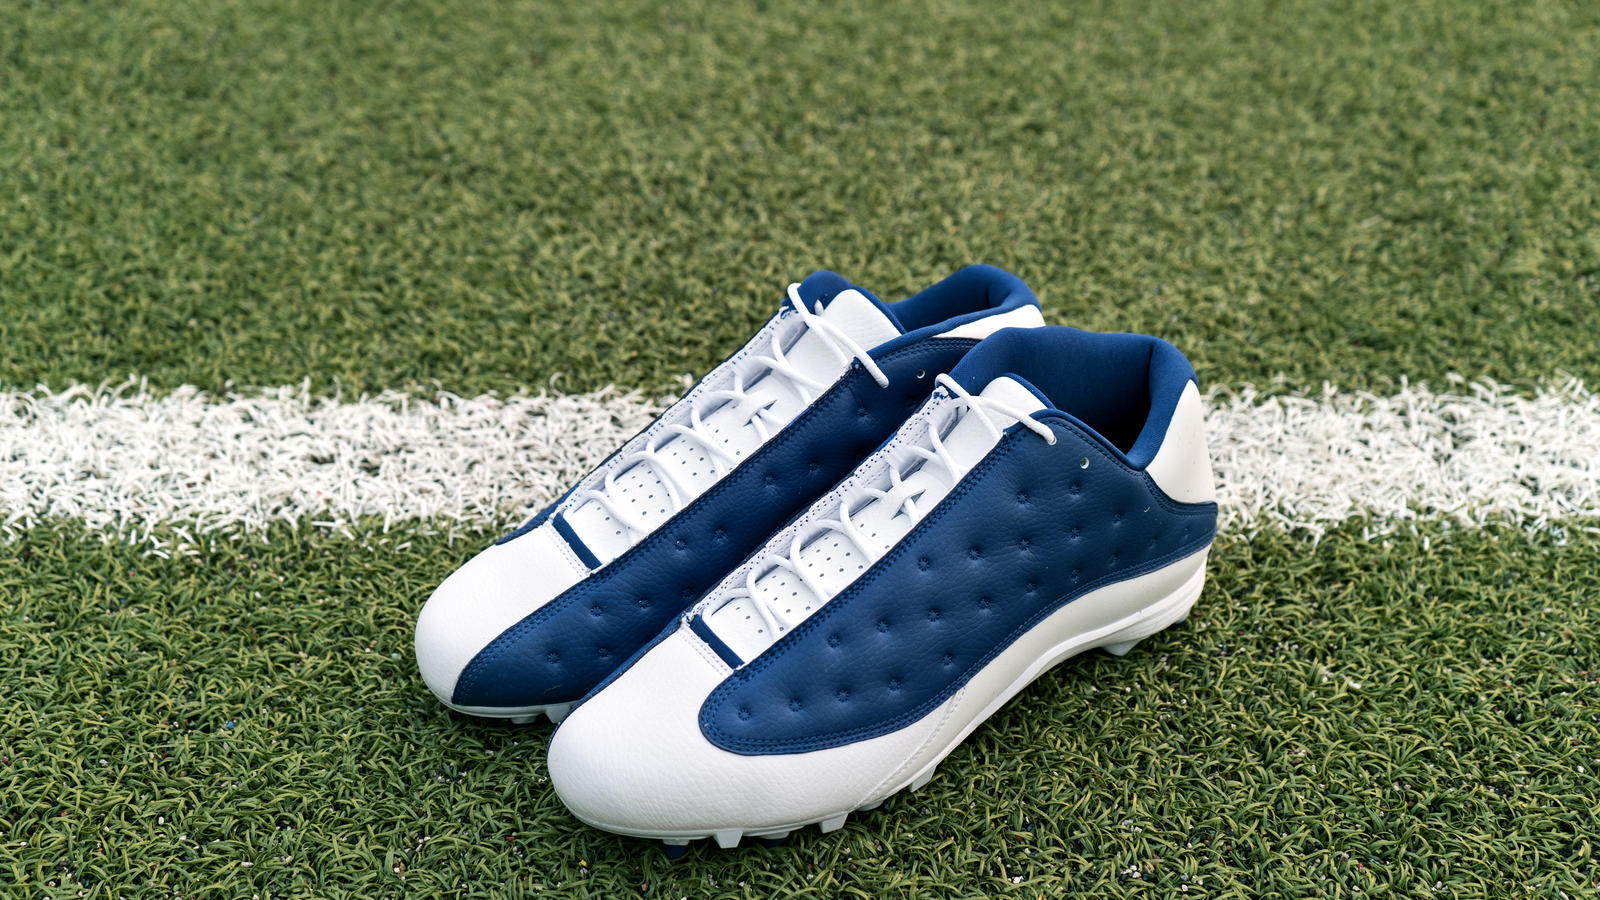 Jordan Brand's Football Roster Debuts New Air Jordan XIII PE Cleats 13